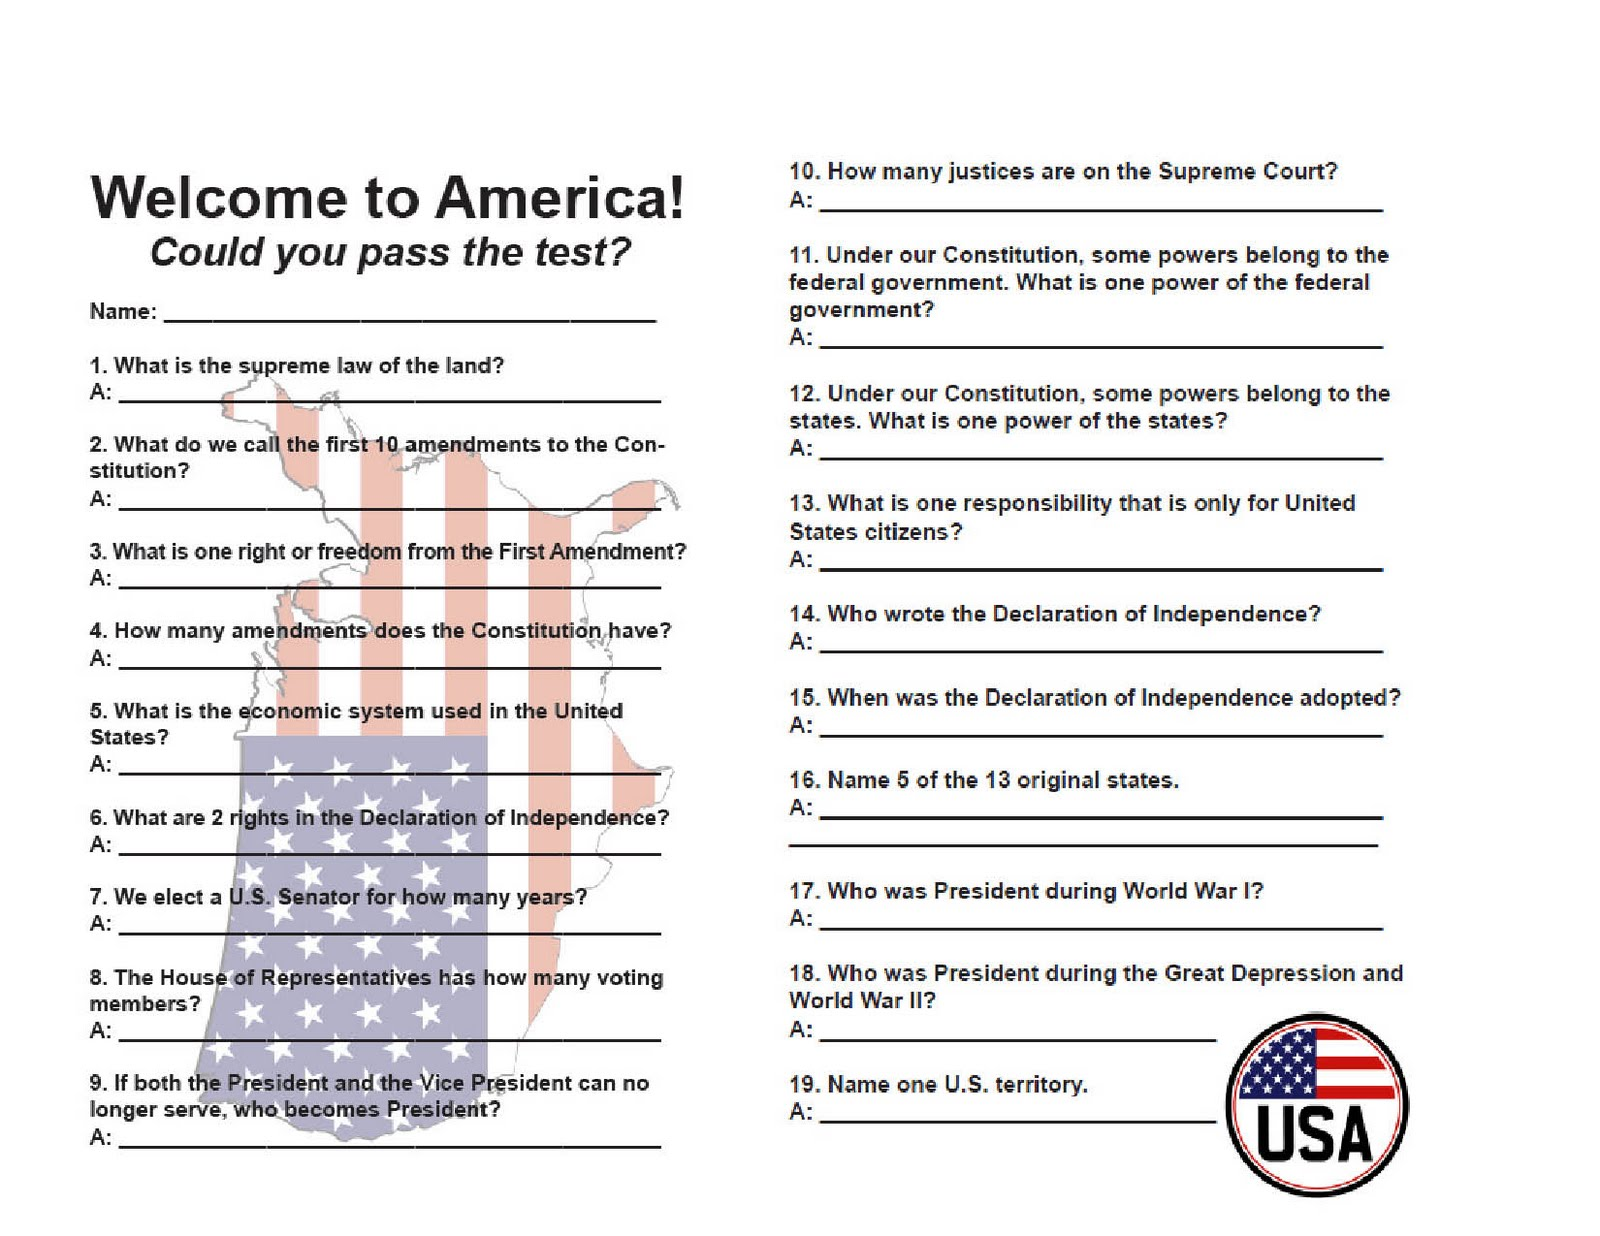 printable citizenship test That are Wild | Holt Blog